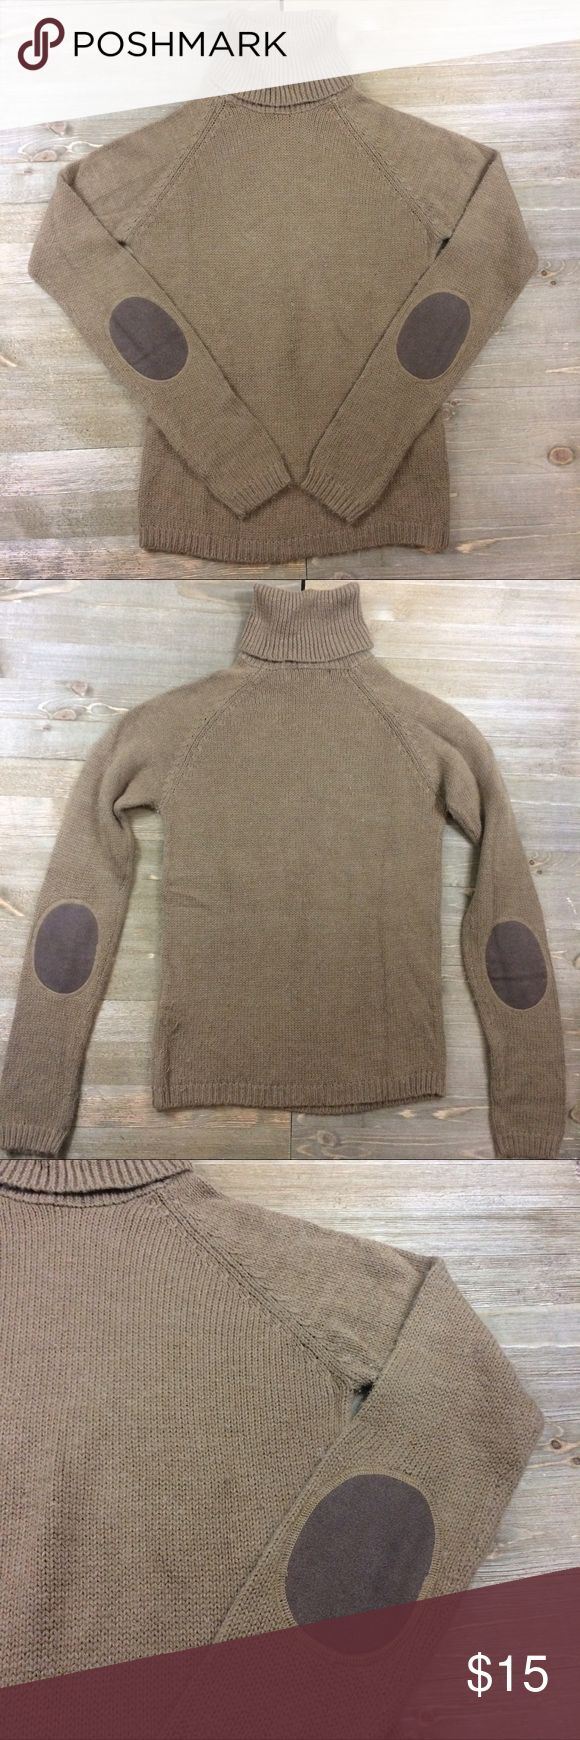 Zara Elbow Patch Sweater Light brown turtleneck sweater with dark brown elbow patches Zara Sweaters Cowl & Turtlenecks